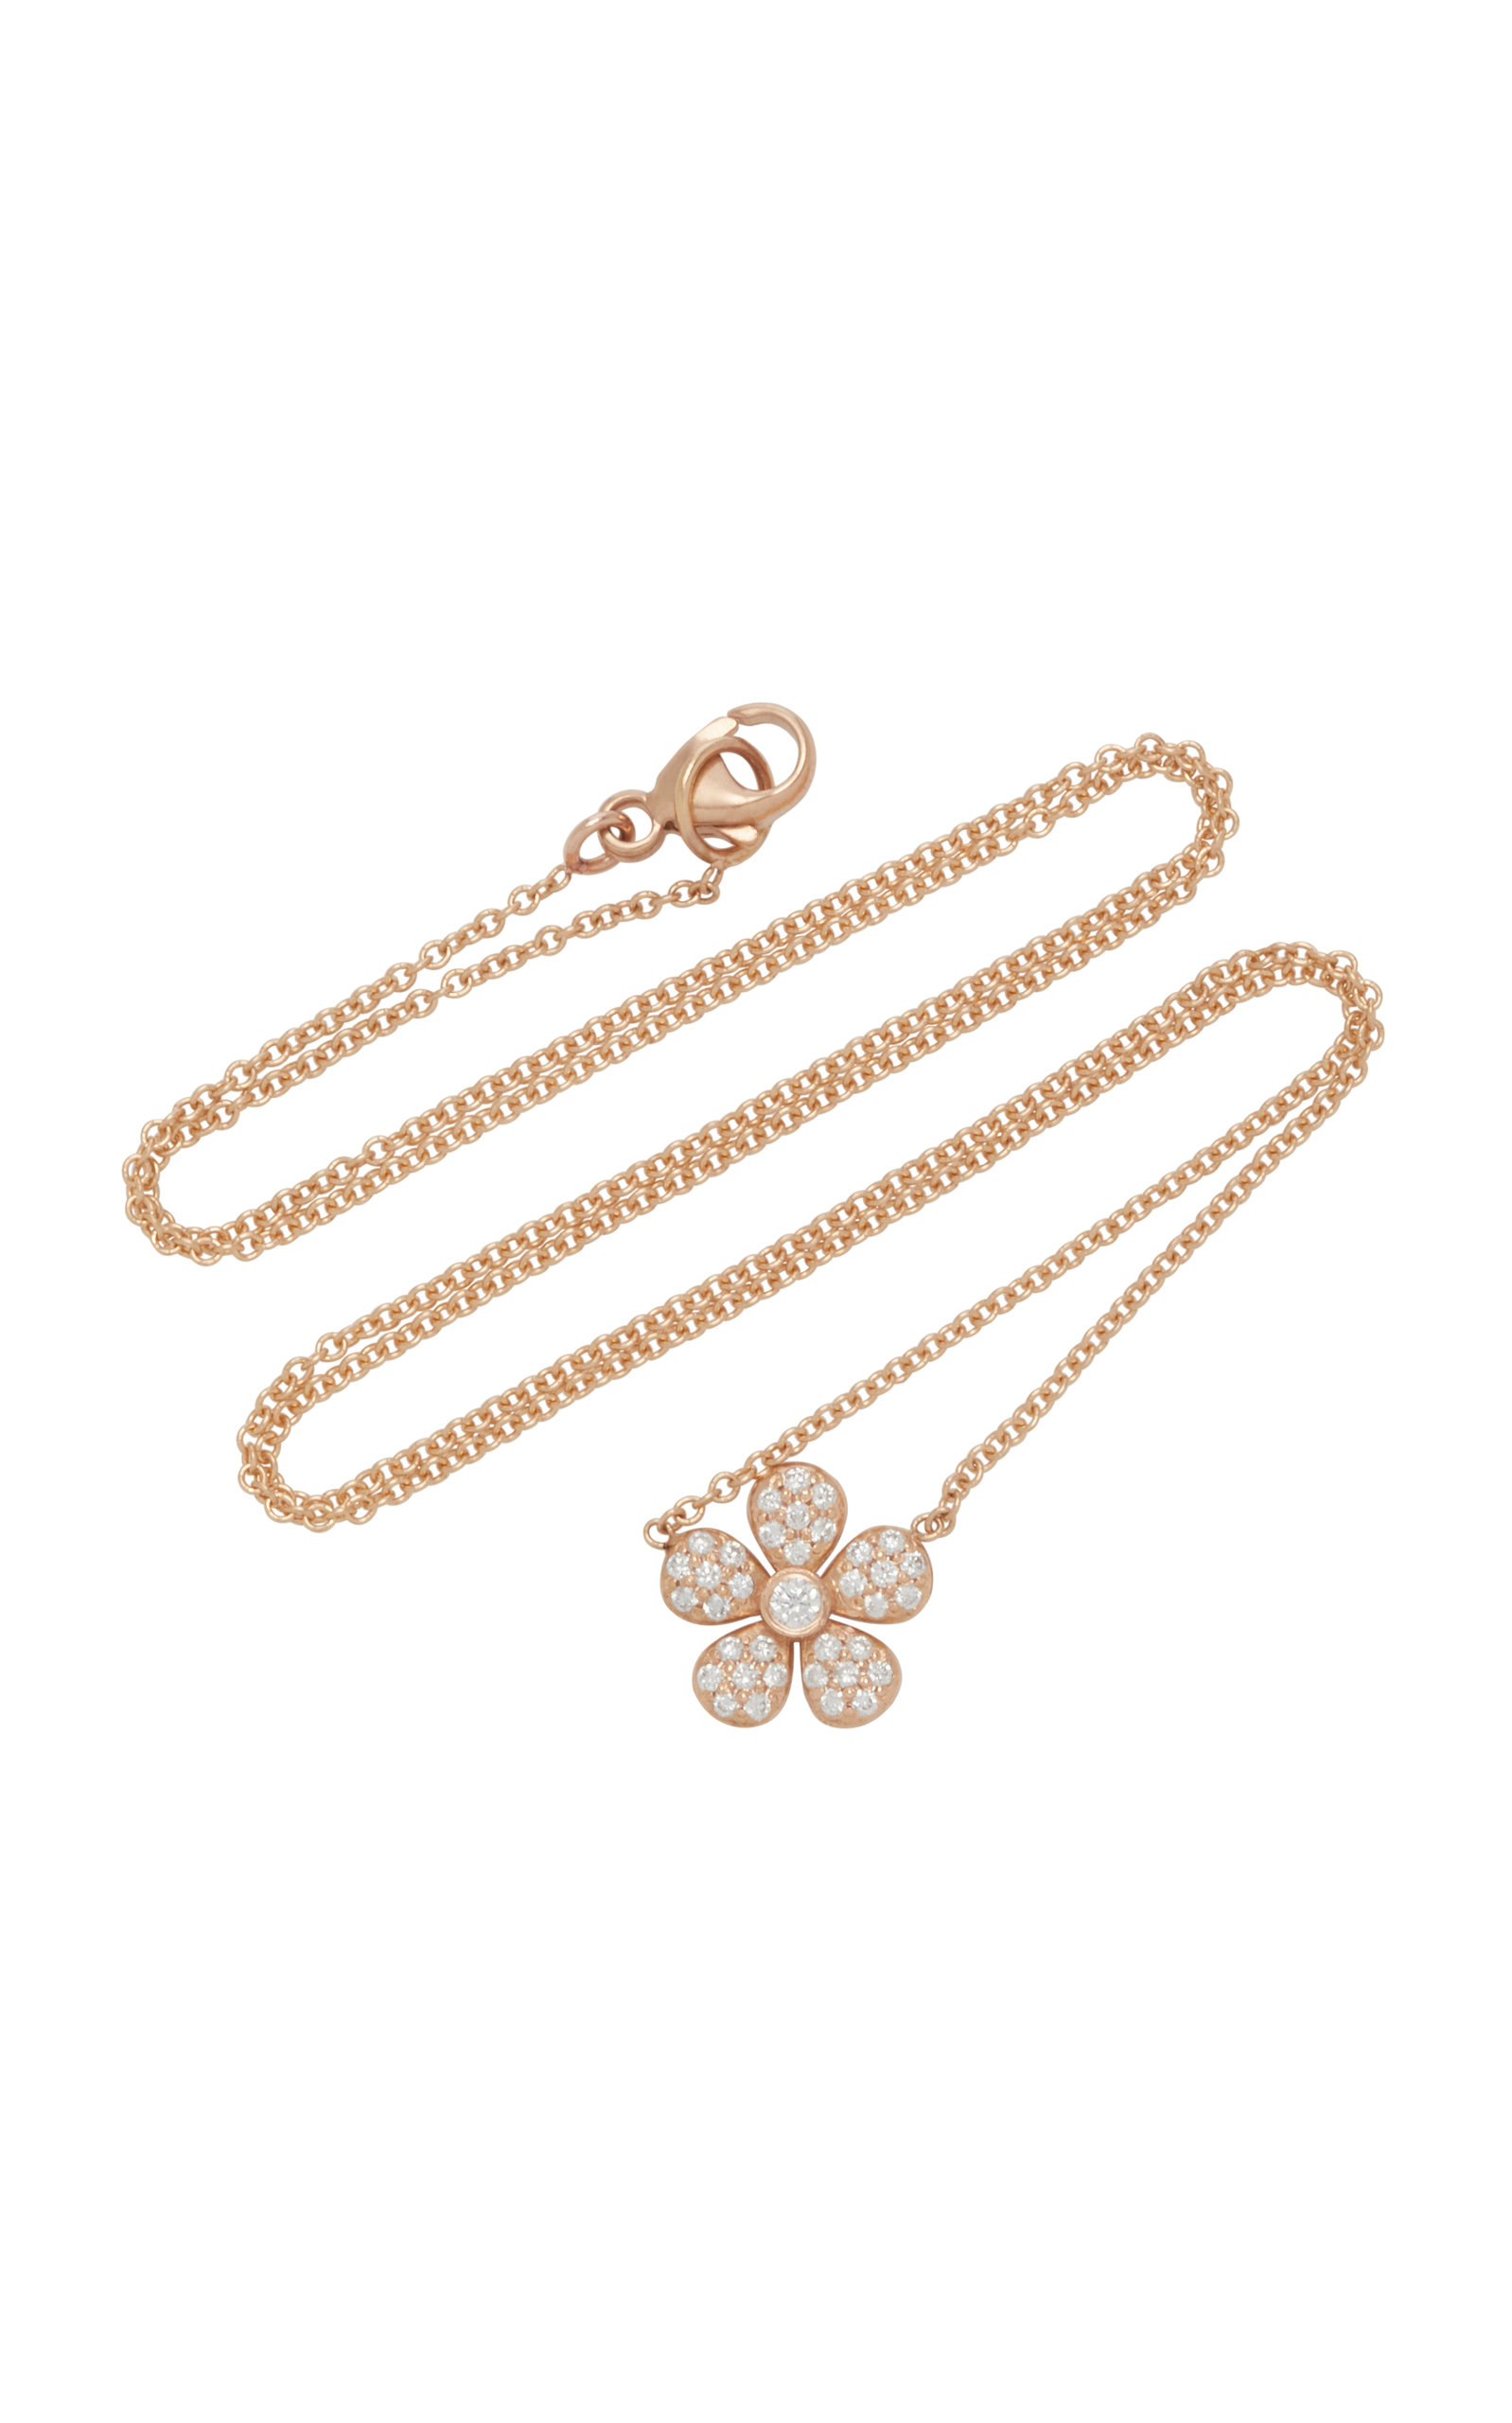 COLETTE JEWELRY Ivy 18K Rose Gold Pendant Necklace